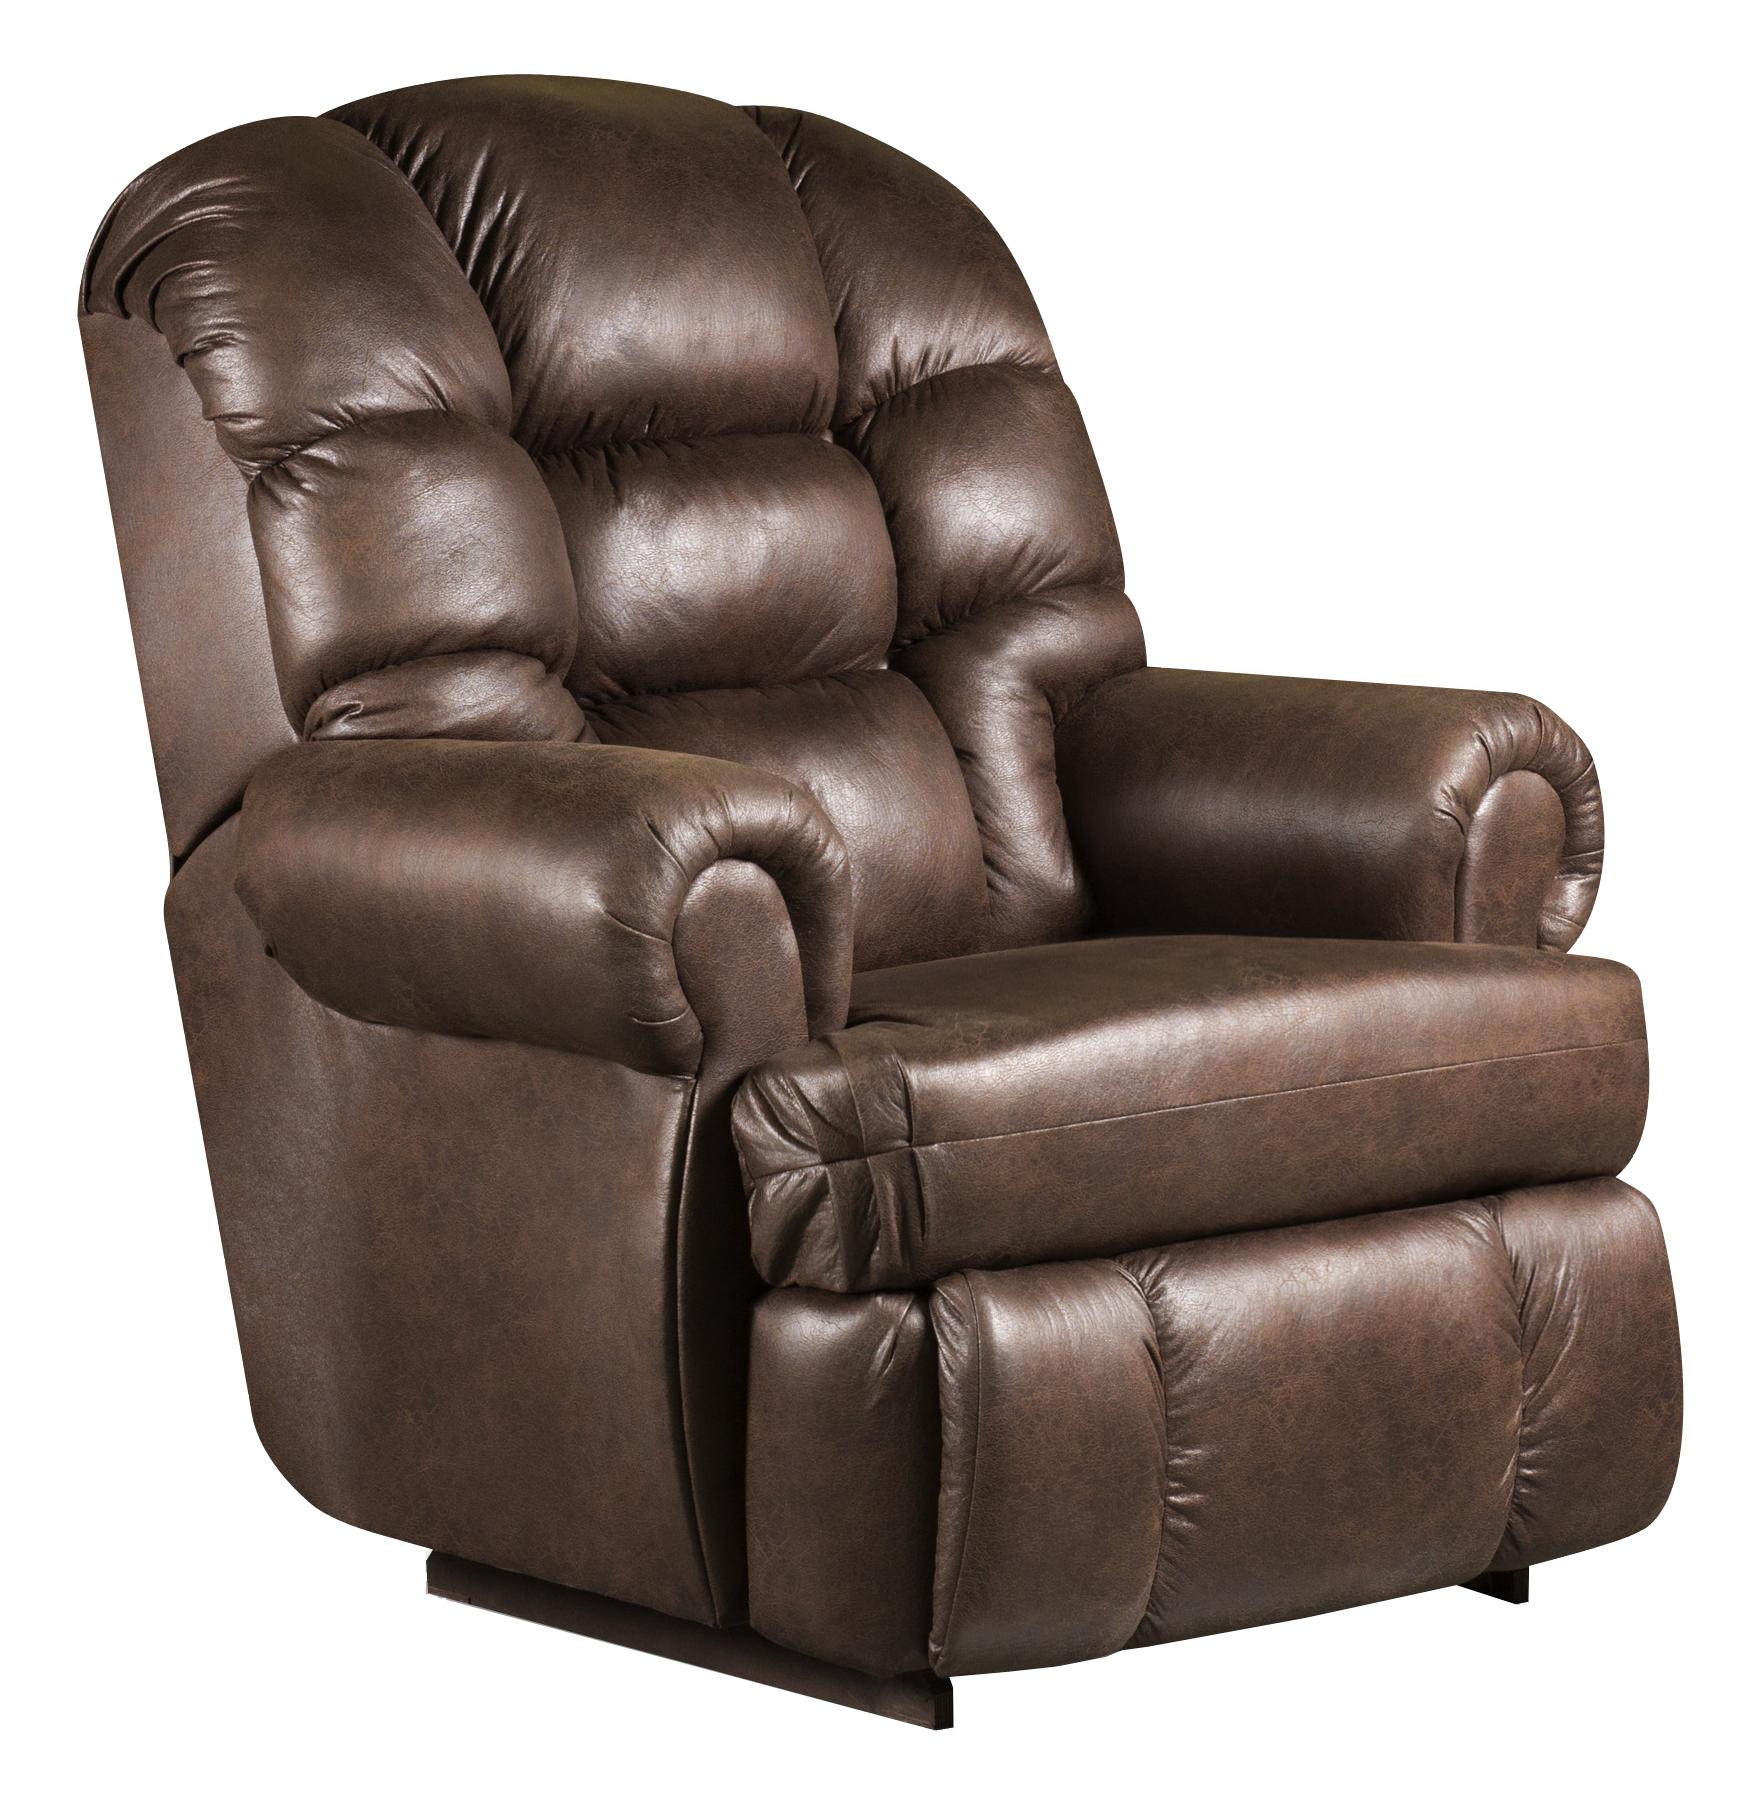 Astonishing Recliners Power Recliner Bralicious Painted Fabric Chair Ideas Braliciousco